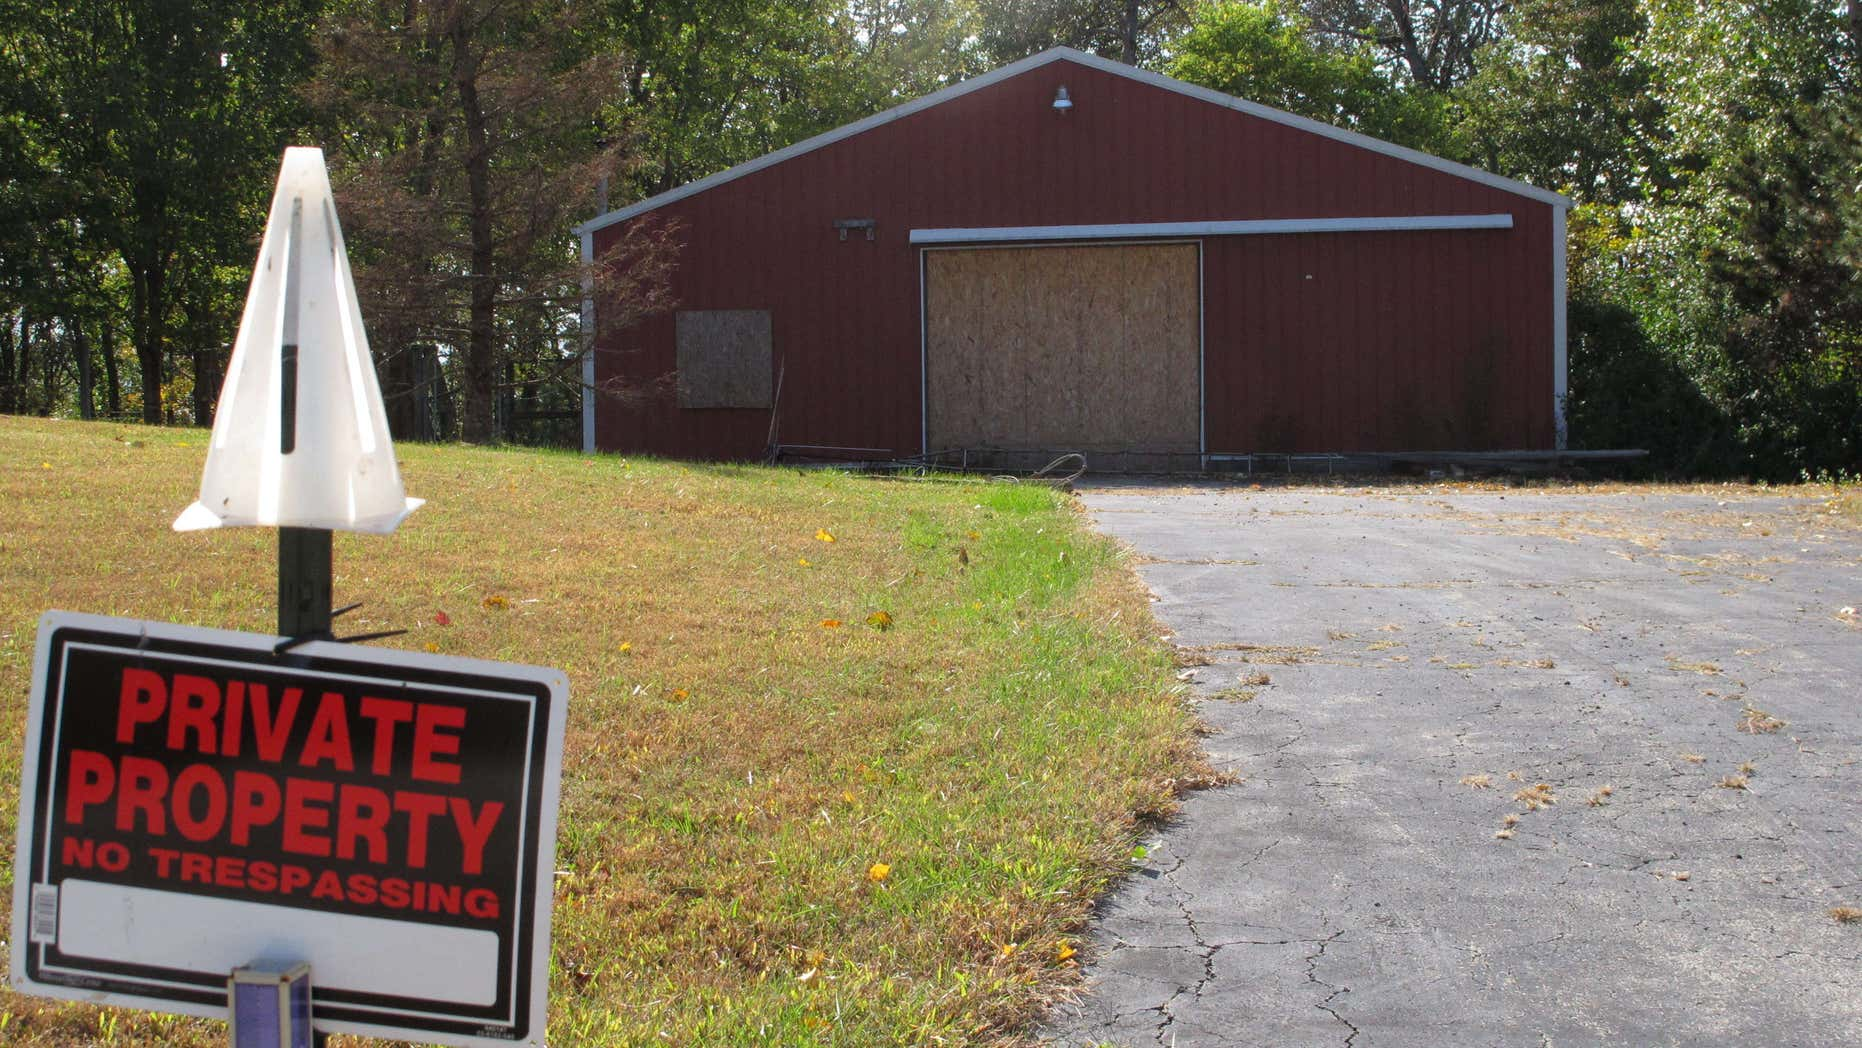 In this Tuesday, Oct. 18, 2016 photo, a private property sign guards the boarded up garage on property on Union Hill Road near the trailer where the bodies of Dana Rhoden and her children, Chris Rhoden Jr., and Hanna Rhoden, were found on April 22, three of eight family members found shot to death that day in a still-unsolved crime, in Piketon, Ohio.